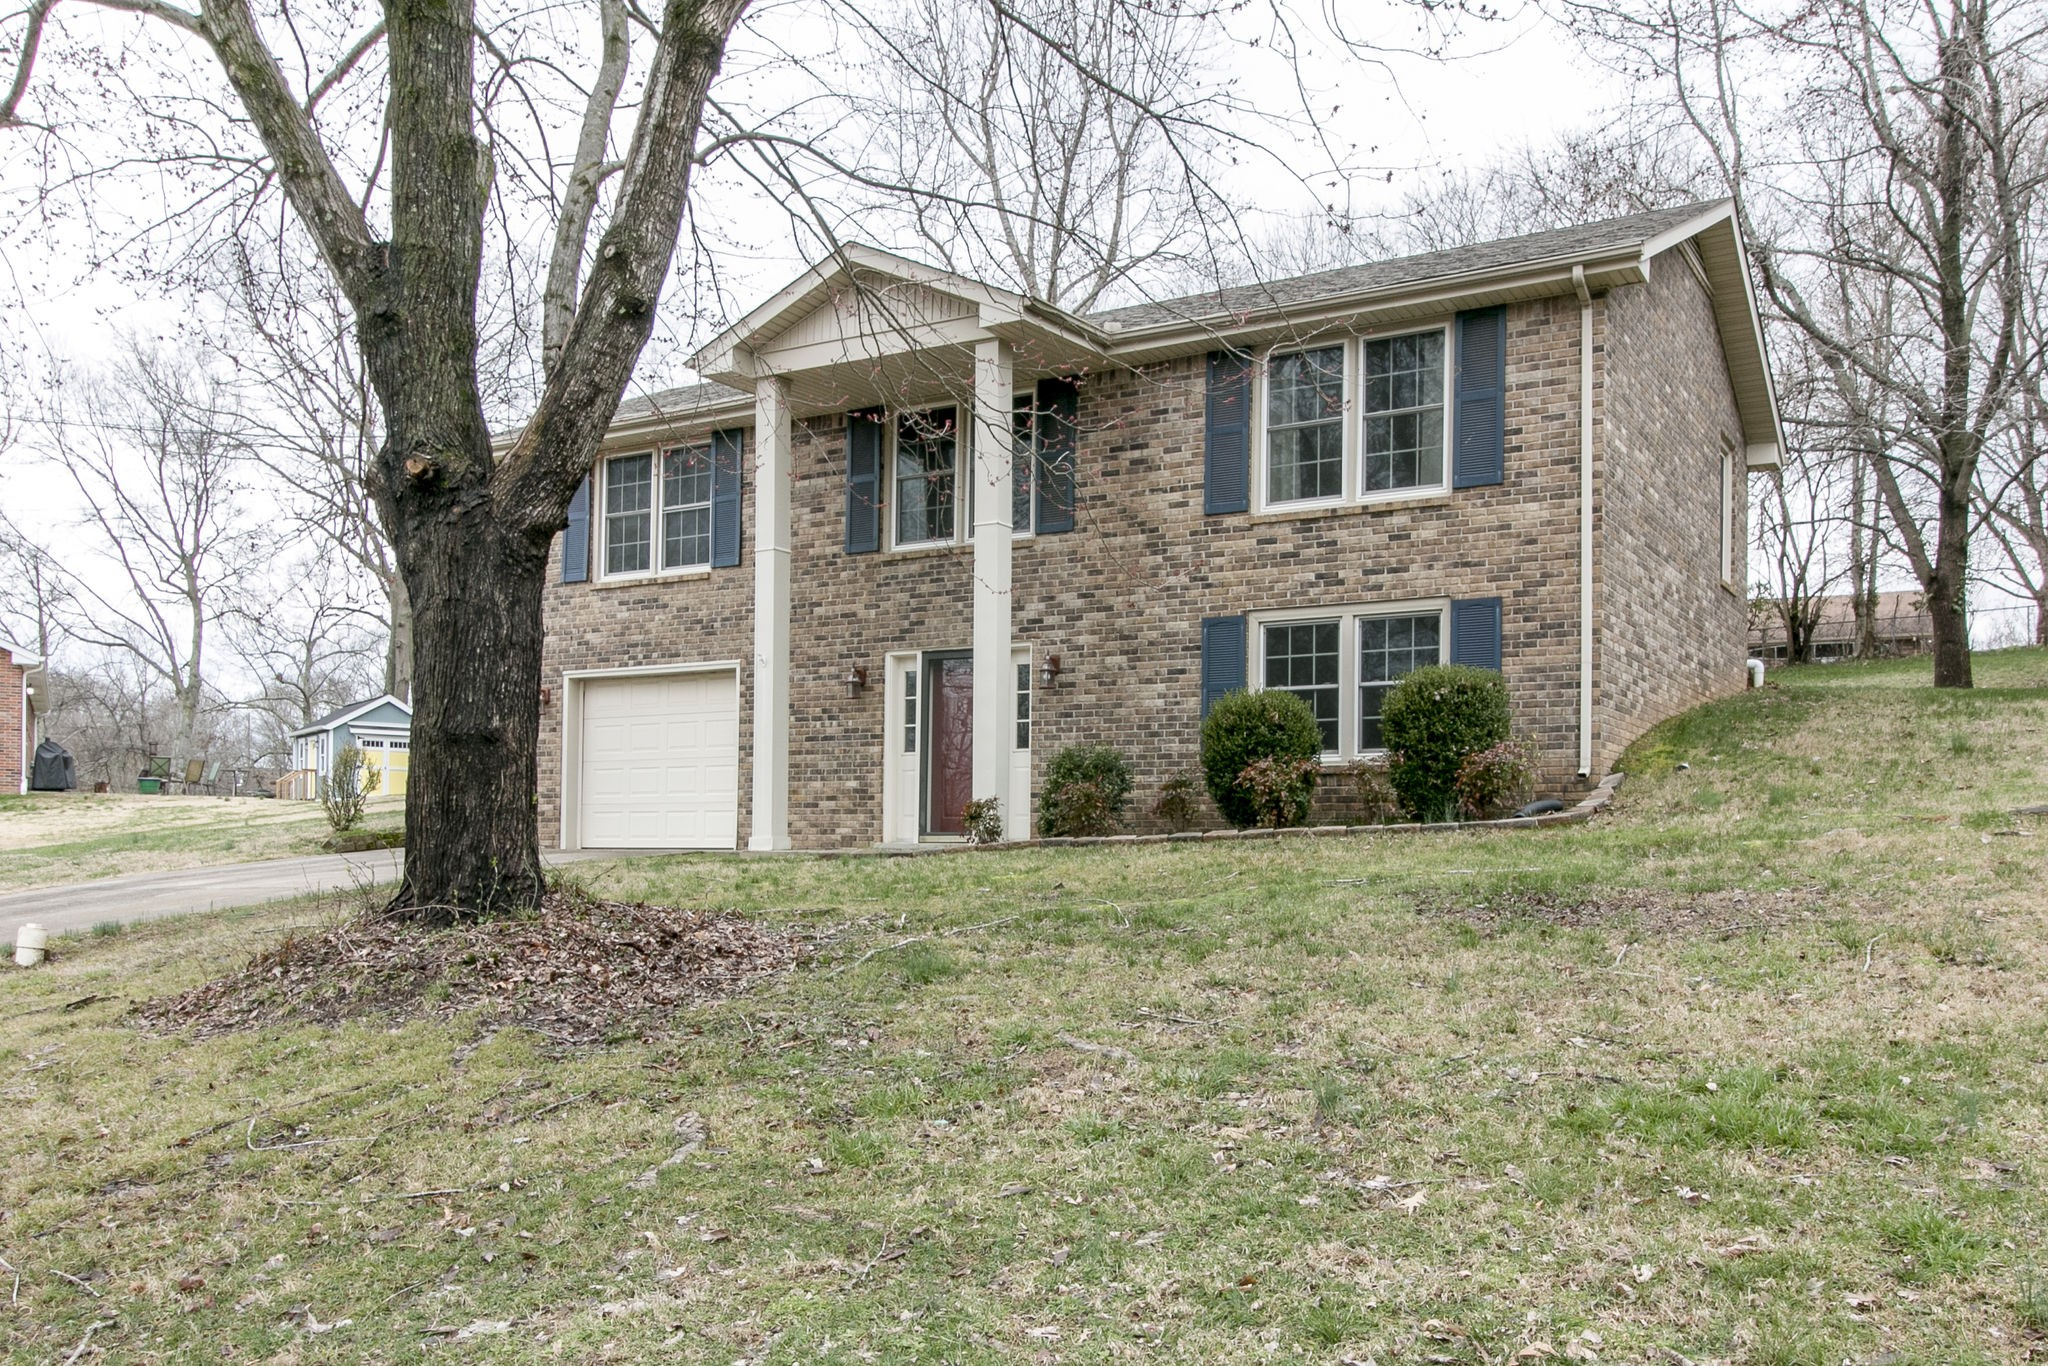 404 Warren Cir, Clarksville, TN 37040 - Clarksville, TN real estate listing